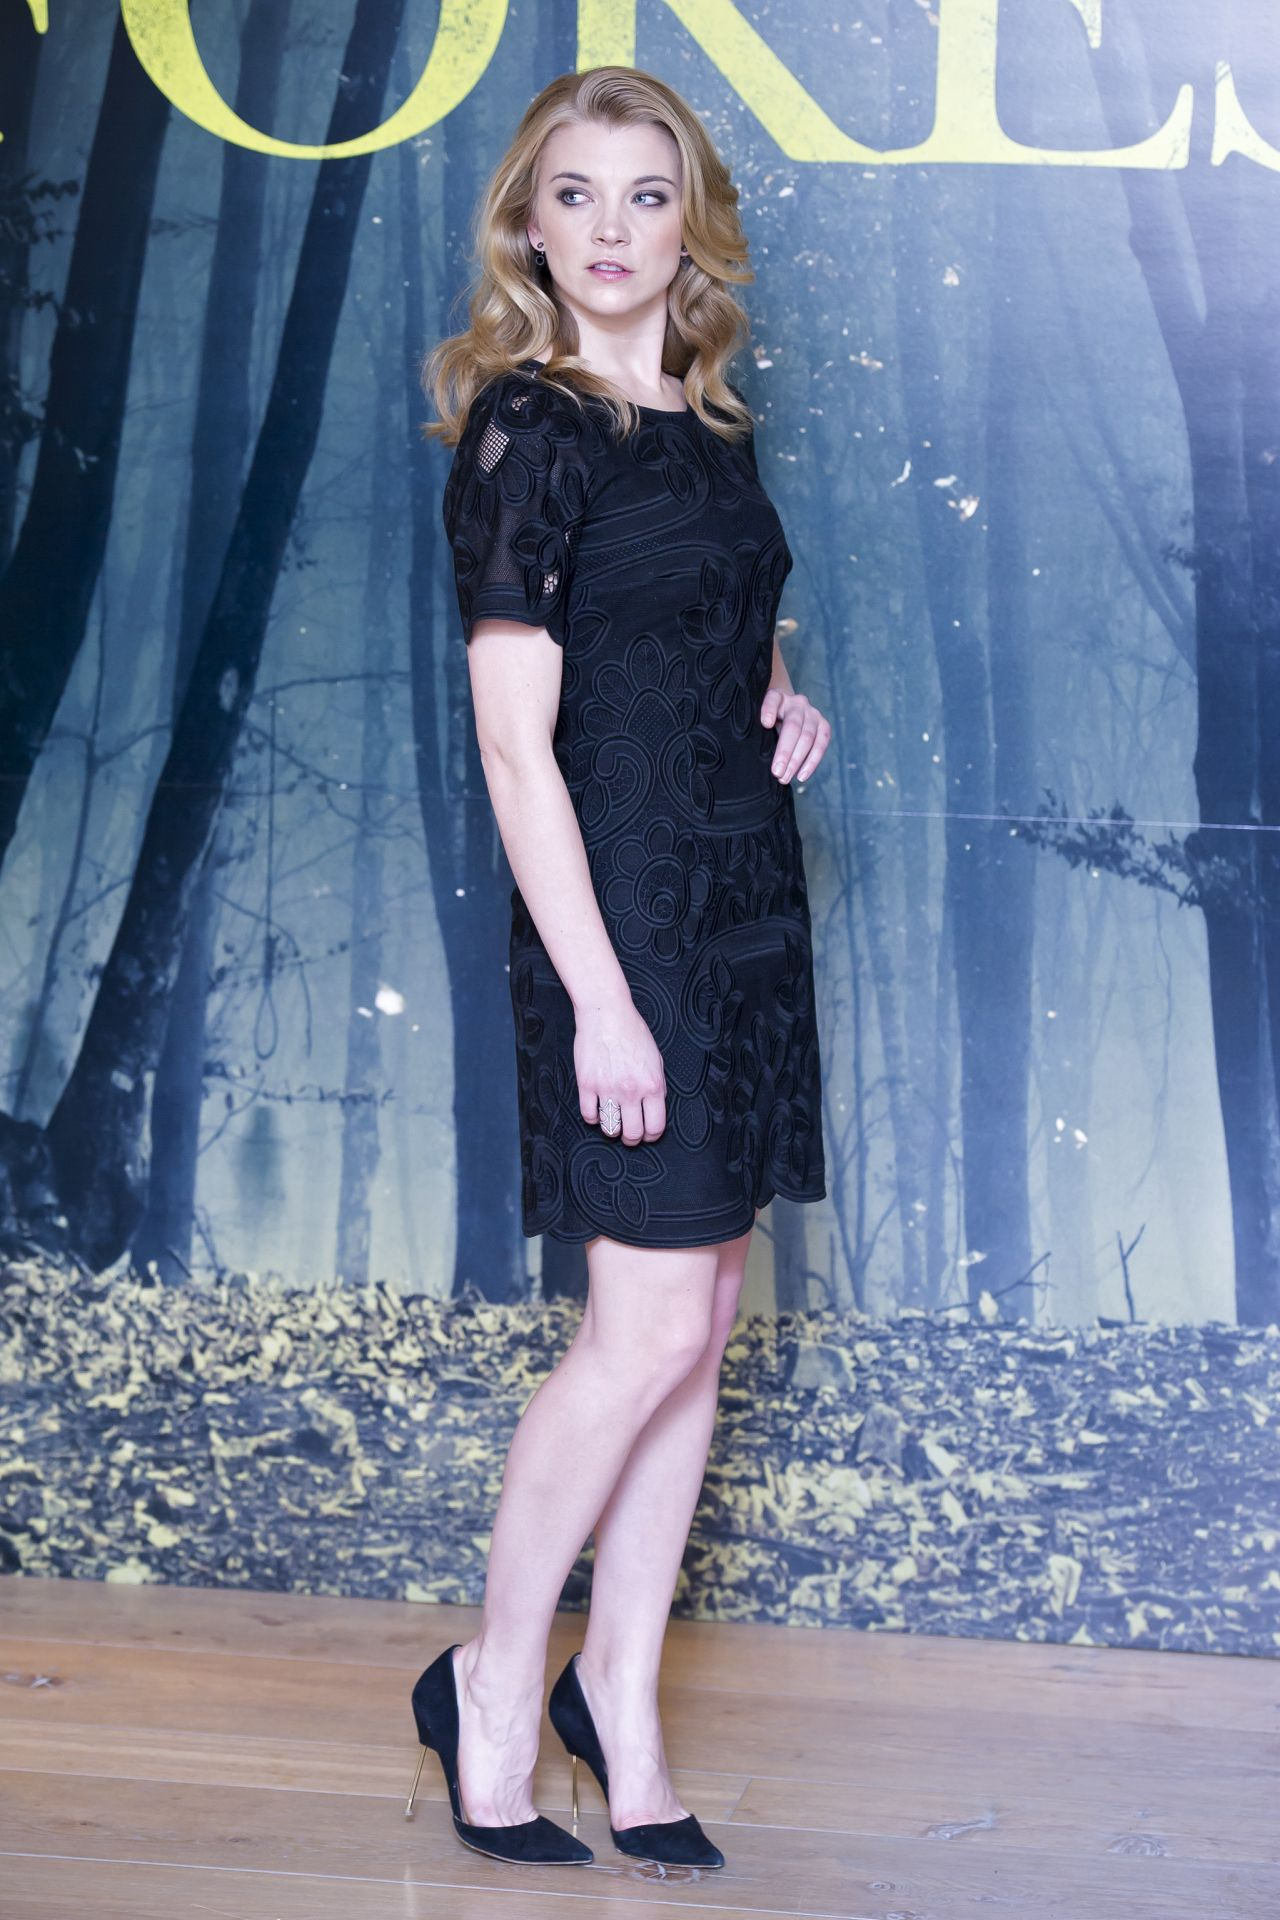 natalie-dormer-the-forest-photocall-in-london-uk-17